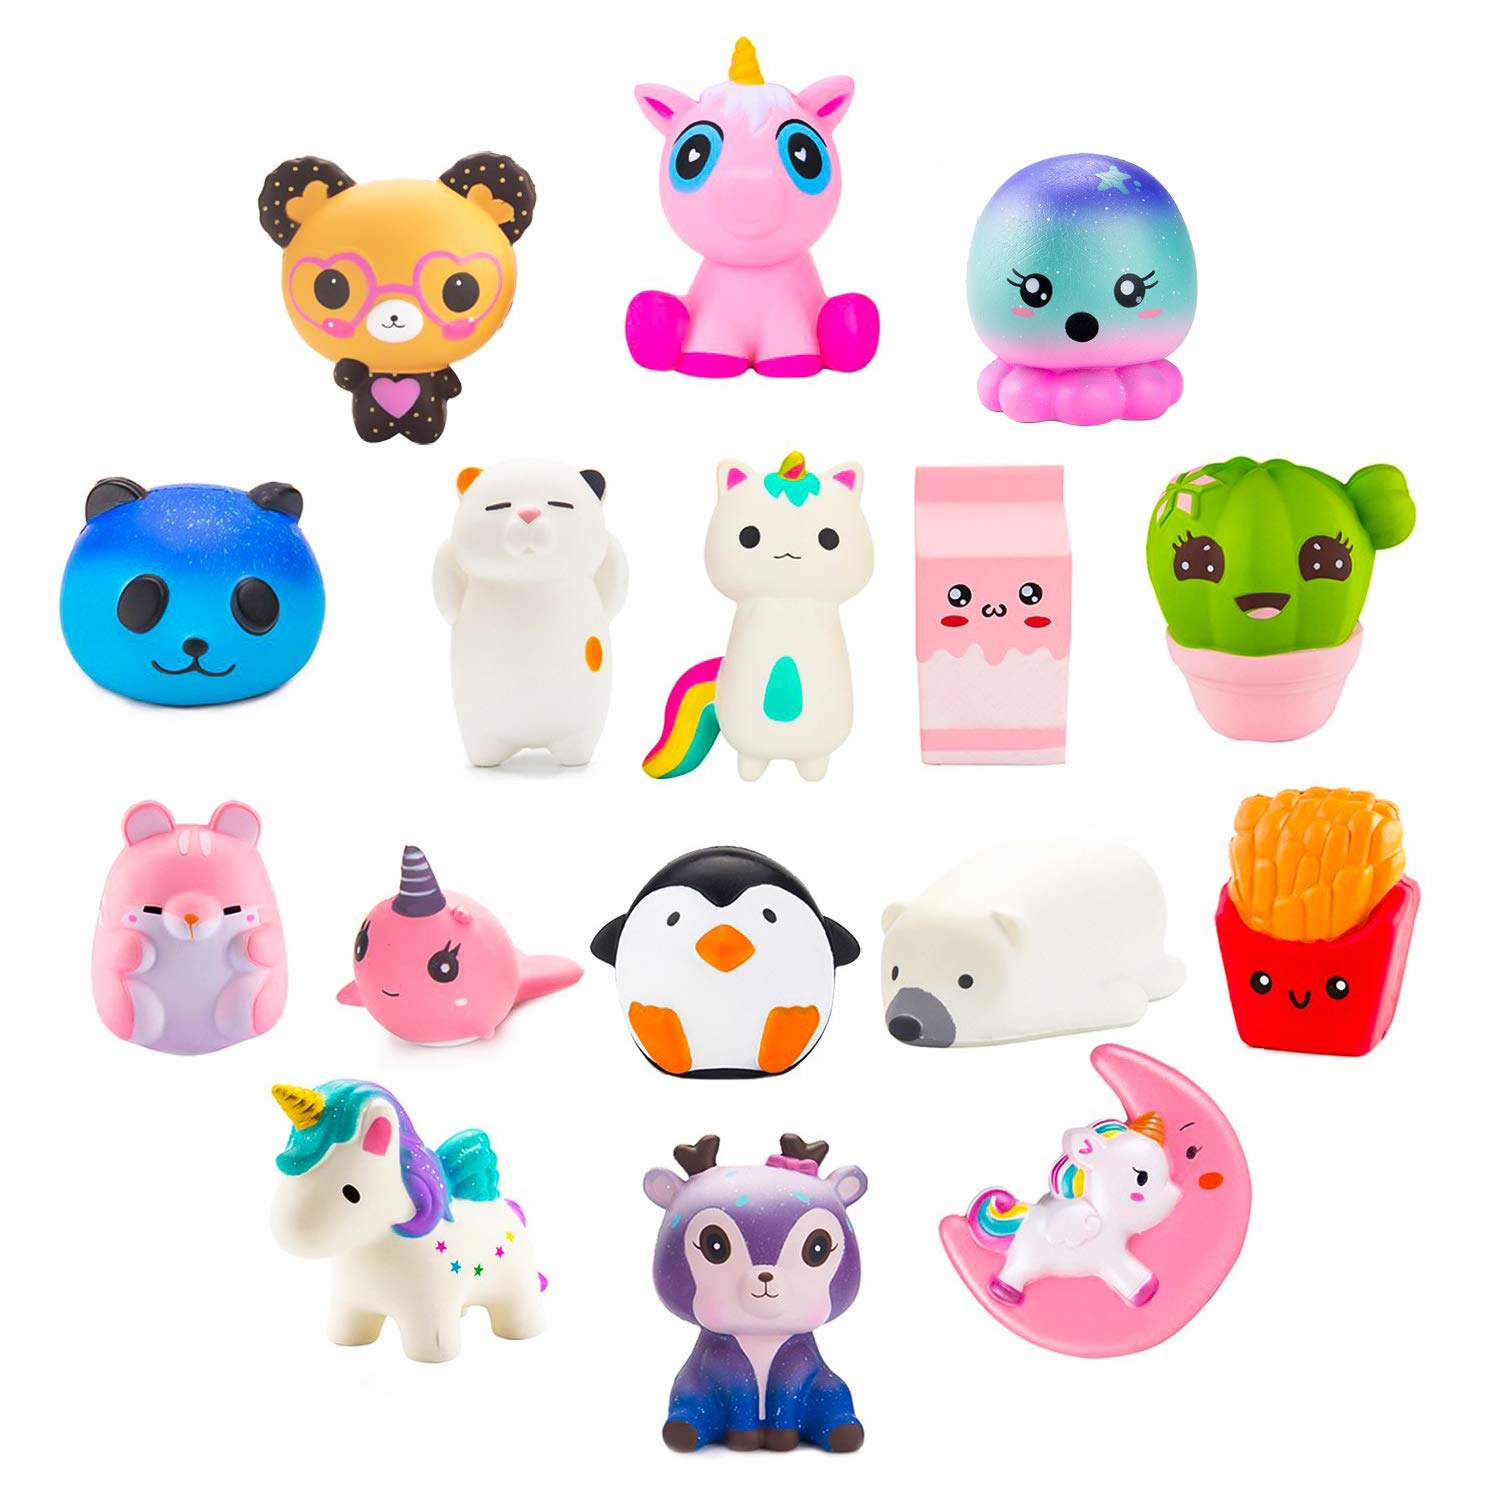 BeYumi Slow Rising Toy, Unicorn, Panda, Deer, Cat Squishy Toy, Kawaii Jumbo 10 Pcs Cream Scented Simulation Cute Animal & Food Squeeze Toys for Collection Gift, Decorative props Large or Stress Relief